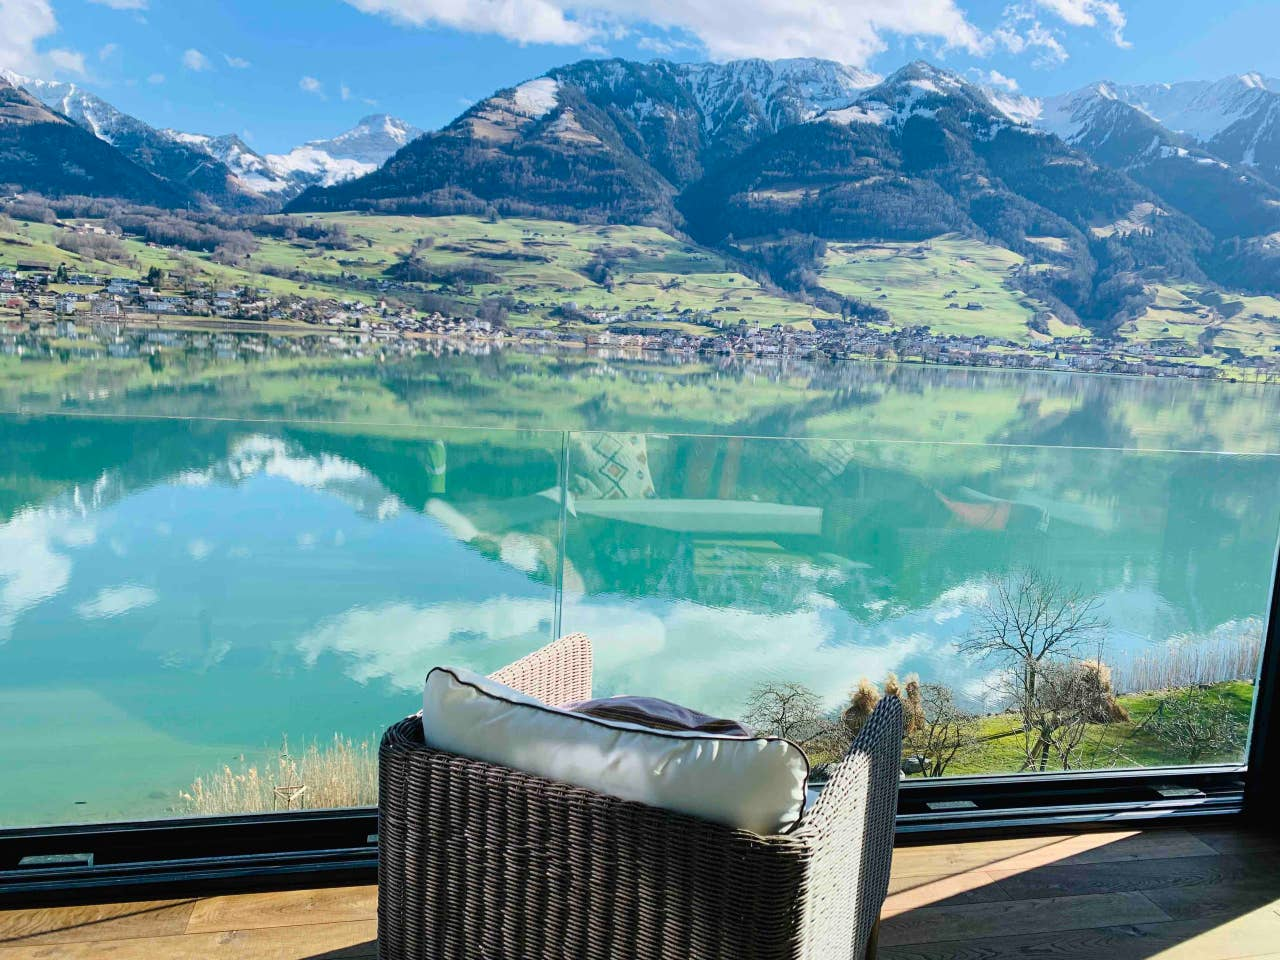 Penthouse Villa Wilen, Switzerland